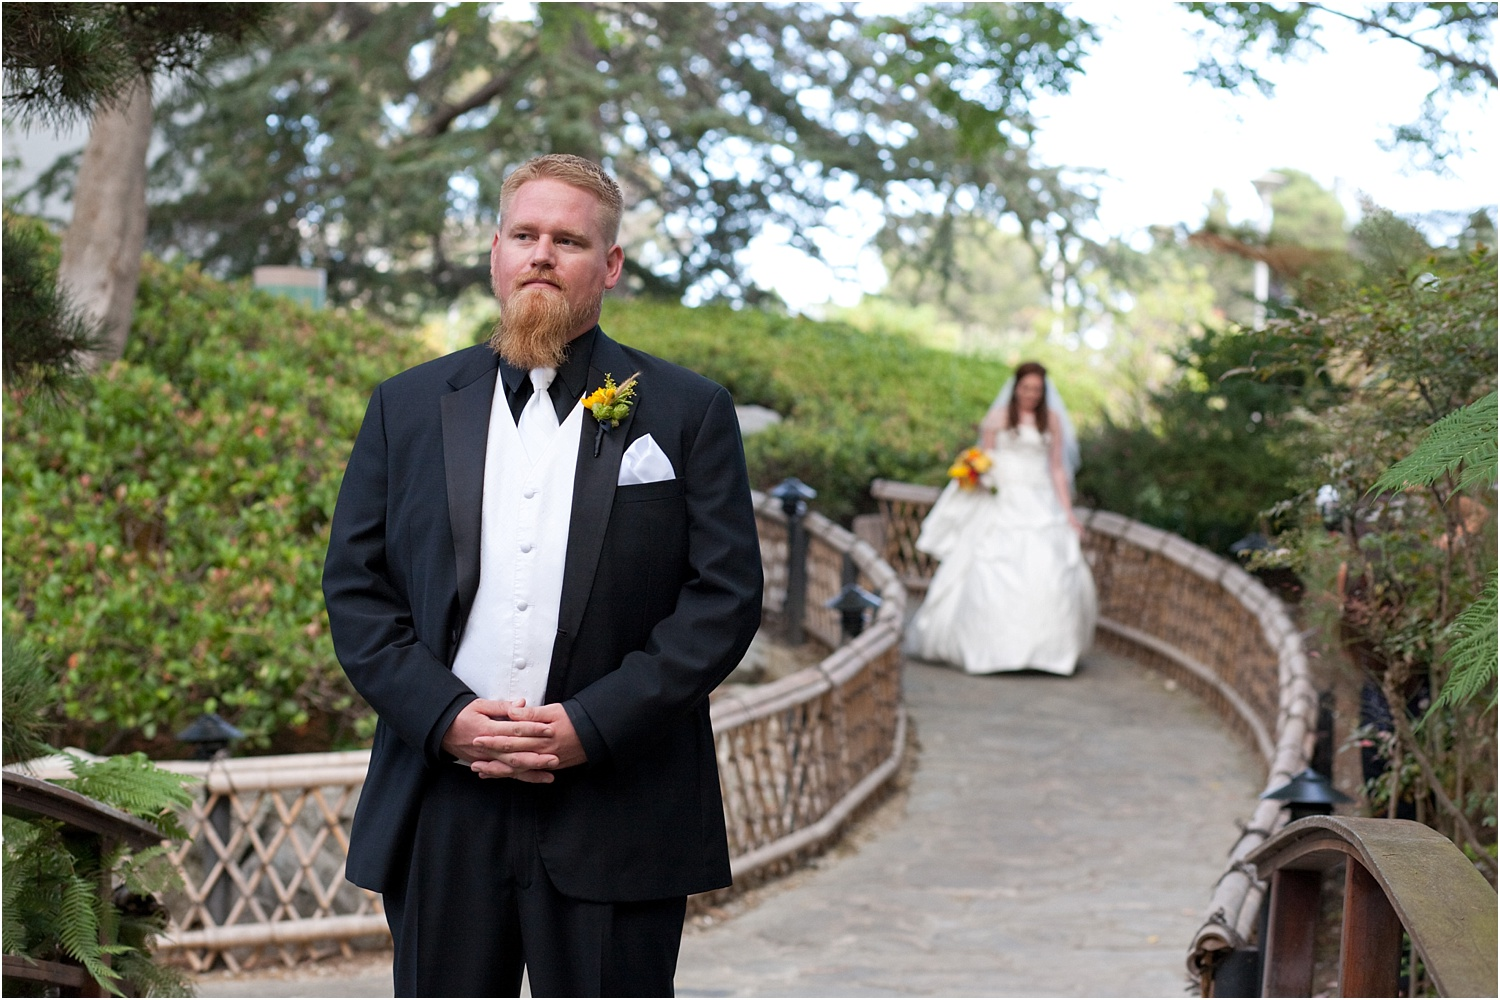 Photographing a 'First Look': The Pros and Cons for Wedding Photographers